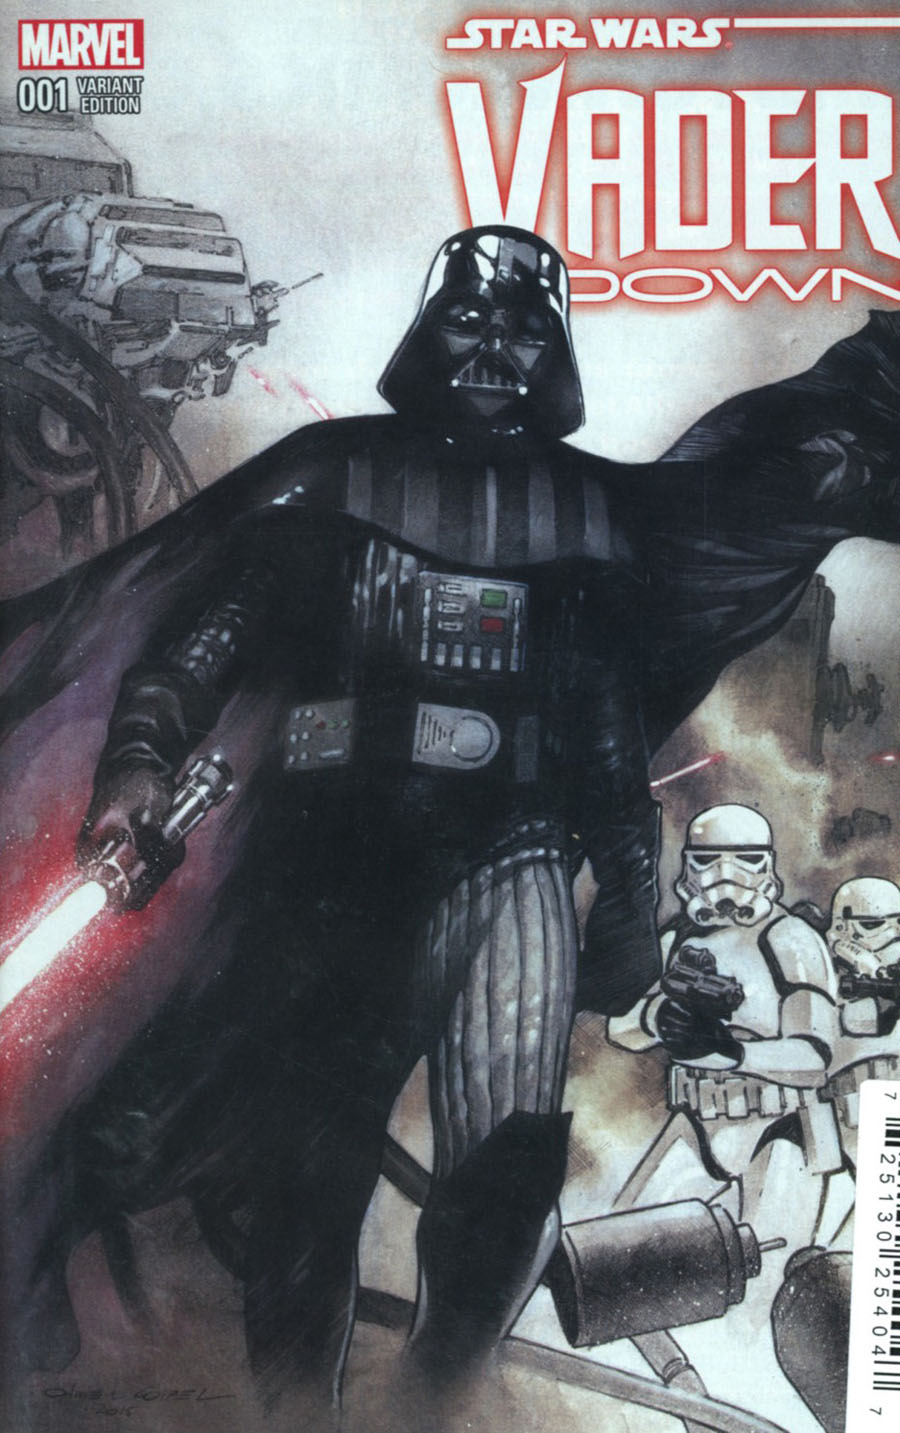 Star Wars Vader Down #1 Cover O DF Exclusive Olivier Coipel Variant Cover Plus 2 (Vader Down Part 1)